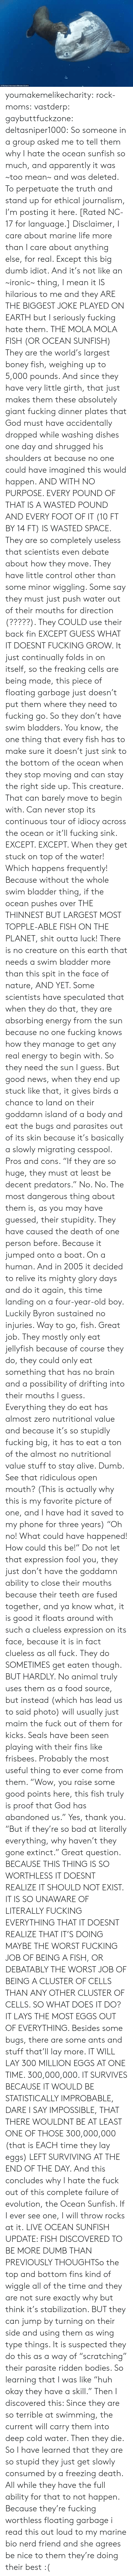 "glory: ORihad Herrma M  S youmakemelikecharity:  rock-moms:  vastderp:  gaybuttfuckzone:  deltasniper1000:  So someone in a group asked me to tell them why I hate the ocean sunfish so much, and apparently it was ~too mean~ and was deleted. To perpetuate the truth and stand up for ethical journalism, I'm posting it here. [Rated NC-17 for language.]  Disclaimer, I care about marine life more than I care about anything else, for real. Except this big dumb idiot. And it's not like an ~ironic~ thing, I mean it IS hilarious to me and they ARE THE BIGGEST JOKE PLAYED ON EARTH but I seriously fucking hate them.  THE MOLA MOLA FISH (OR OCEAN SUNFISH)  They are the world's largest boney fish, weighing up to 5,000 pounds. And since they have very little girth, that just makes them these absolutely giant fucking dinner plates that God must have accidentally dropped while washing dishes one day and shrugged his shoulders at because no one could have imagined this would happen. AND WITH NO PURPOSE. EVERY POUND OF THAT IS A WASTED POUND AND EVERY FOOT OF IT (10 FT BY 14 FT) IS WASTED SPACE.  They are so completely useless that scientists even debate about how they move. They have little control other than some minor wiggling. Some say they must just push water out of their mouths for direction (?????). They COULD use their back fin EXCEPT GUESS WHAT IT DOESNT FUCKING GROW. It just continually folds in on itself, so the freaking cells are being made, this piece of floating garbage just doesn't put them where they need to fucking go.   So they don't have swim bladders. You know, the one thing that every fish has to make sure it doesn't just sink to the bottom of the ocean when they stop moving and can stay the right side up. This creature. That can barely move to begin with. Can never stop its continuous tour of idiocy across the ocean or it'll fucking sink. EXCEPT. EXCEPT. When they get stuck on top of the water! Which happens frequently! Because without the whole swim bladder thing, if the ocean pushes over THE THINNEST BUT LARGEST MOST TOPPLE-ABLE FISH ON THE PLANET, shit outta luck! There is no creature on this earth that needs a swim bladder more than this spit in the face of nature, AND YET. Some scientists have speculated that when they do that, they are absorbing energy from the sun because no one fucking knows how they manage to get any real energy to begin with. So they need the sun I guess. But good news, when they end up stuck like that, it gives birds a chance to land on their goddamn island of a body and eat the bugs and parasites out of its skin because it's basically a slowly migrating cesspool. Pros and cons.   ""If they are so huge, they must at least be decent predators."" No. No. The most dangerous thing about them is, as you may have guessed, their stupidity. They have caused the death of one person before. Because it jumped onto a boat. On a human. And in 2005 it decided to relive its mighty glory days and do it again, this time landing on a four-year-old boy. Luckily Byron sustained no injuries. Way to go, fish. Great job.  They mostly only eat jellyfish because of course they do, they could only eat something that has no brain and a possibility of drifting into their mouths I guess. Everything they do eat has almost zero nutritional value and because it's so stupidly fucking big, it has to eat a ton of the almost no nutritional value stuff to stay alive. Dumb. See that ridiculous open mouth? (This is actually why this is my favorite picture of one, and I have had it saved to my phone for three years) ""Oh no! What could have happened! How could this be!"" Do not let that expression fool you, they just don't have the goddamn ability to close their mouths because their teeth are fused together, and ya know what, it is good it floats around with such a clueless expression on its face, because it is in fact clueless as all fuck.  They do SOMETIMES get eaten though. BUT HARDLY. No animal truly uses them as a food source, but instead (which has lead us to said photo) will usually just maim the fuck out of them for kicks. Seals have been seen playing with their fins like frisbees. Probably the most useful thing to ever come from them.   ""Wow, you raise some good points here, this fish truly is proof that God has abandoned us."" Yes, thank you. ""But if they're so bad at literally everything, why haven't they gone extinct."" Great question.   BECAUSE THIS THING IS SO WORTHLESS IT DOESNT REALIZE IT SHOULD NOT EXIST. IT IS SO UNAWARE OF LITERALLY FUCKING EVERYTHING THAT IT DOESNT REALIZE THAT IT'S DOING MAYBE THE WORST FUCKING JOB OF BEING A FISH, OR DEBATABLY THE WORST JOB OF BEING A CLUSTER OF CELLS THAN ANY OTHER CLUSTER OF CELLS. SO WHAT DOES IT DO? IT LAYS THE MOST EGGS OUT OF EVERYTHING. Besides some bugs, there are some ants and stuff that'll lay more. IT WILL LAY 300 MILLION EGGS AT ONE TIME. 300,000,000. IT SURVIVES BECAUSE IT WOULD BE STATISTICALLY IMPROBABLE, DARE I SAY IMPOSSIBLE, THAT THERE WOULDNT BE AT LEAST ONE OF THOSE 300,000,000 (that is EACH time they lay eggs) LEFT SURVIVING AT THE END OF THE DAY.   And this concludes why I hate the fuck out of this complete failure of evolution, the Ocean Sunfish. If I ever see one, I will throw rocks at it.   LIVE OCEAN SUNFISH UPDATE: FISH DISCOVERED TO BE MORE DUMB THAN PREVIOUSLY THOUGHTSo  the top and bottom fins kind of wiggle all of the time and they are not  sure exactly why but think it's stabilization. BUT they can jump by  turning on their side and using them as  wing type things. It is suspected they do this as a way of ""scratching""  their parasite ridden bodies. So learning that I was like ""huh okay they  have a skill."" Then I discovered this: Since they  are so terrible at swimming, the current will carry them into deep cold  water. Then they die. So I have learned that they are so stupid they  just get slowly consumed by a freezing death. All while they have the  full ability for that to not happen. Because they're fucking worthless  floating garbage    i read this out loud to my marine bio nerd friend and she agrees   be nice to them they're doing their best :("